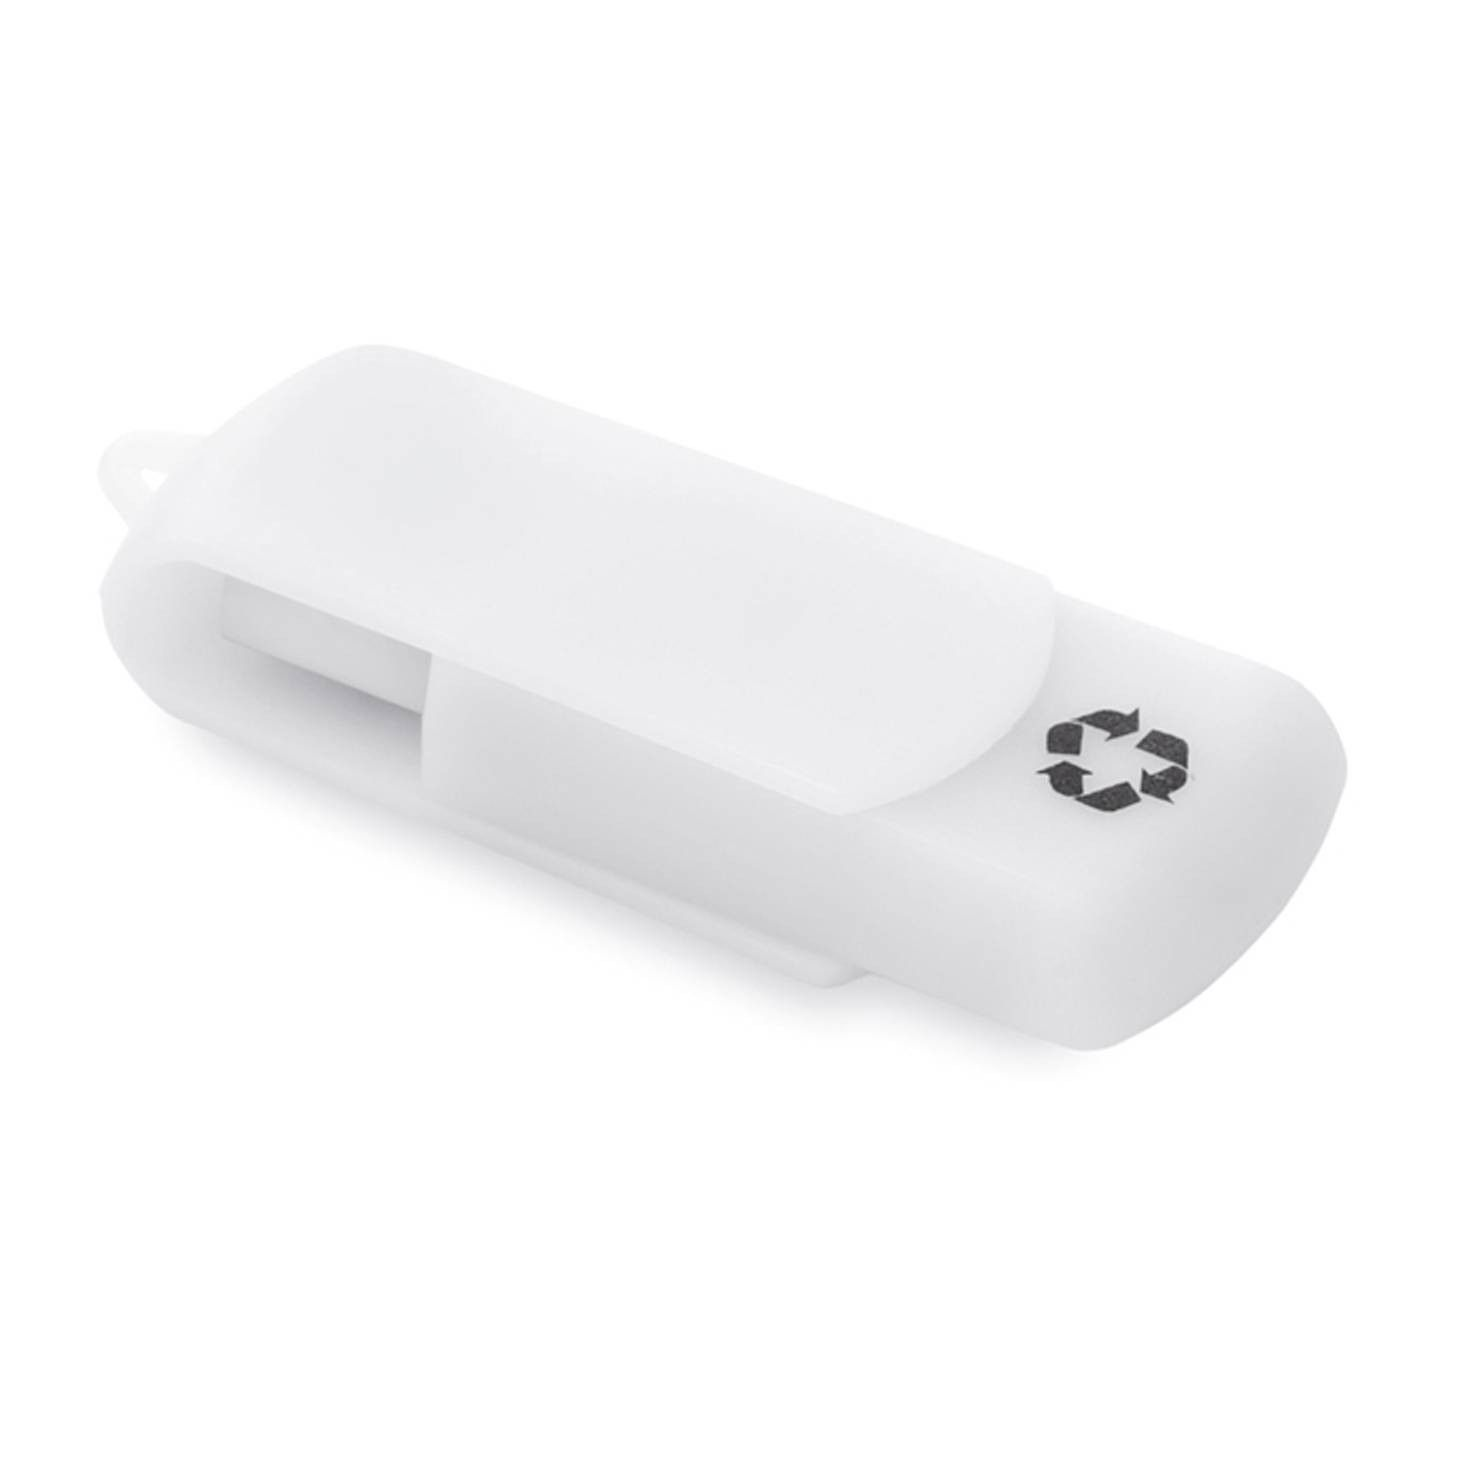 Witte USB stick gerecycled | 8GB